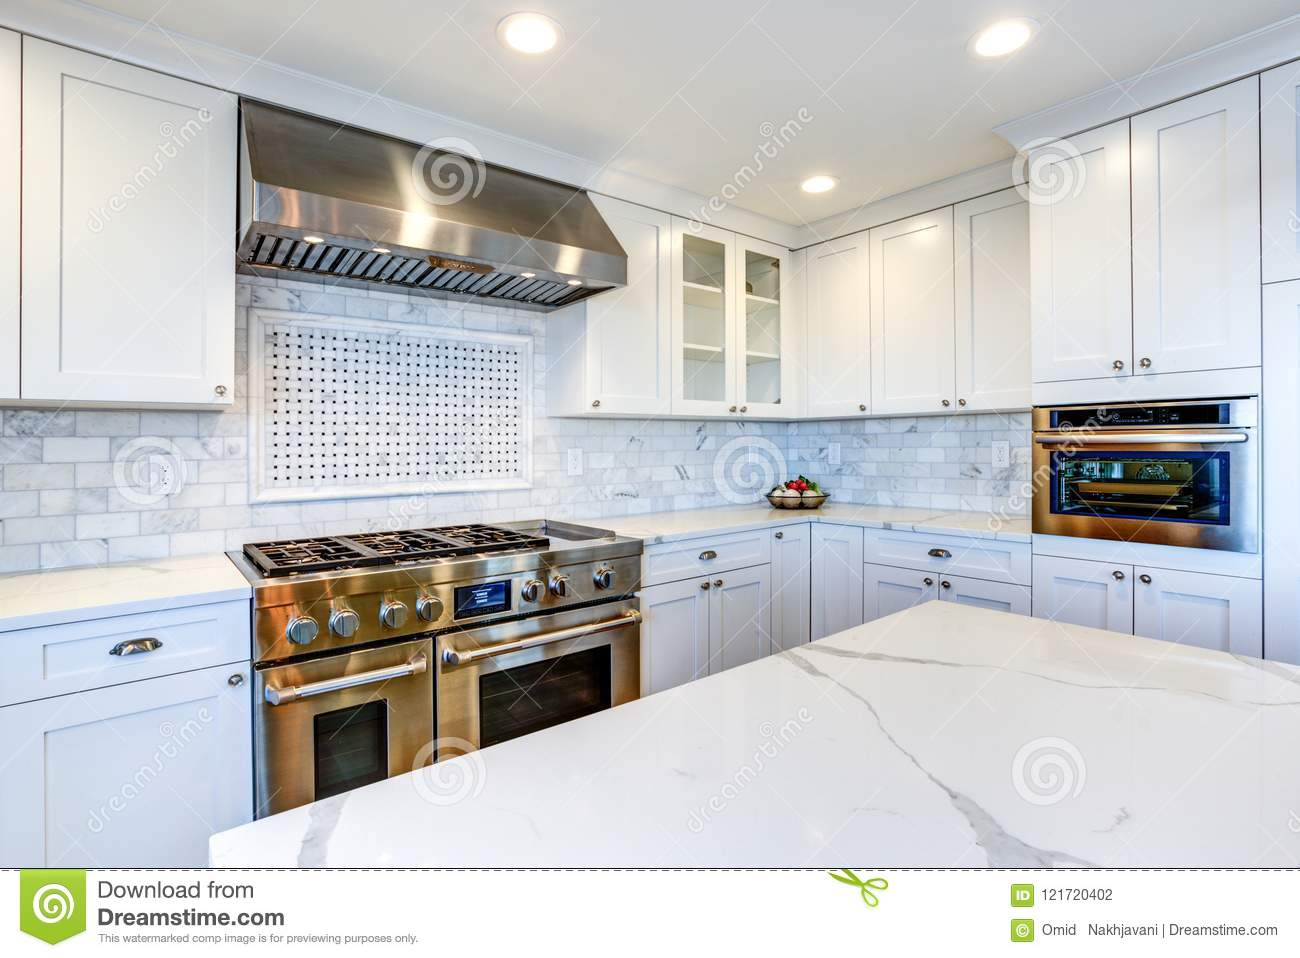 - White Kitchen With Stainless Steel Hood Over Gas Cooktop. Stock